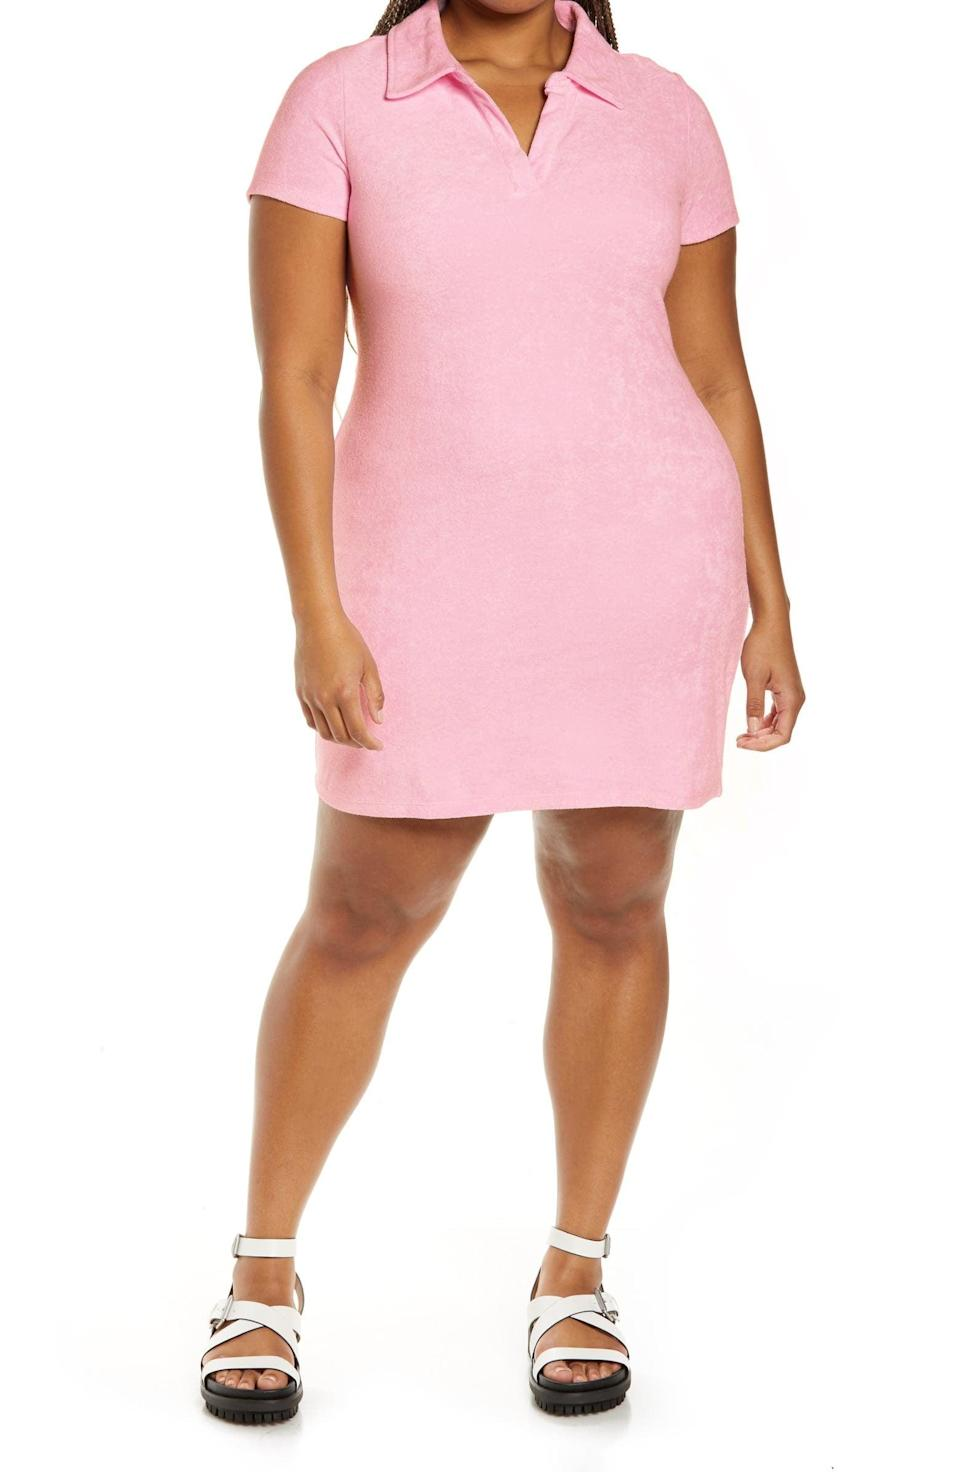 <p>This <span>BP. Polo Terry Cloth Minidress</span> ($39) will keep you looking sporty and cool. Wear it with platform sandals to make it even more comfortable, or low sneakers for a casual look.</p>